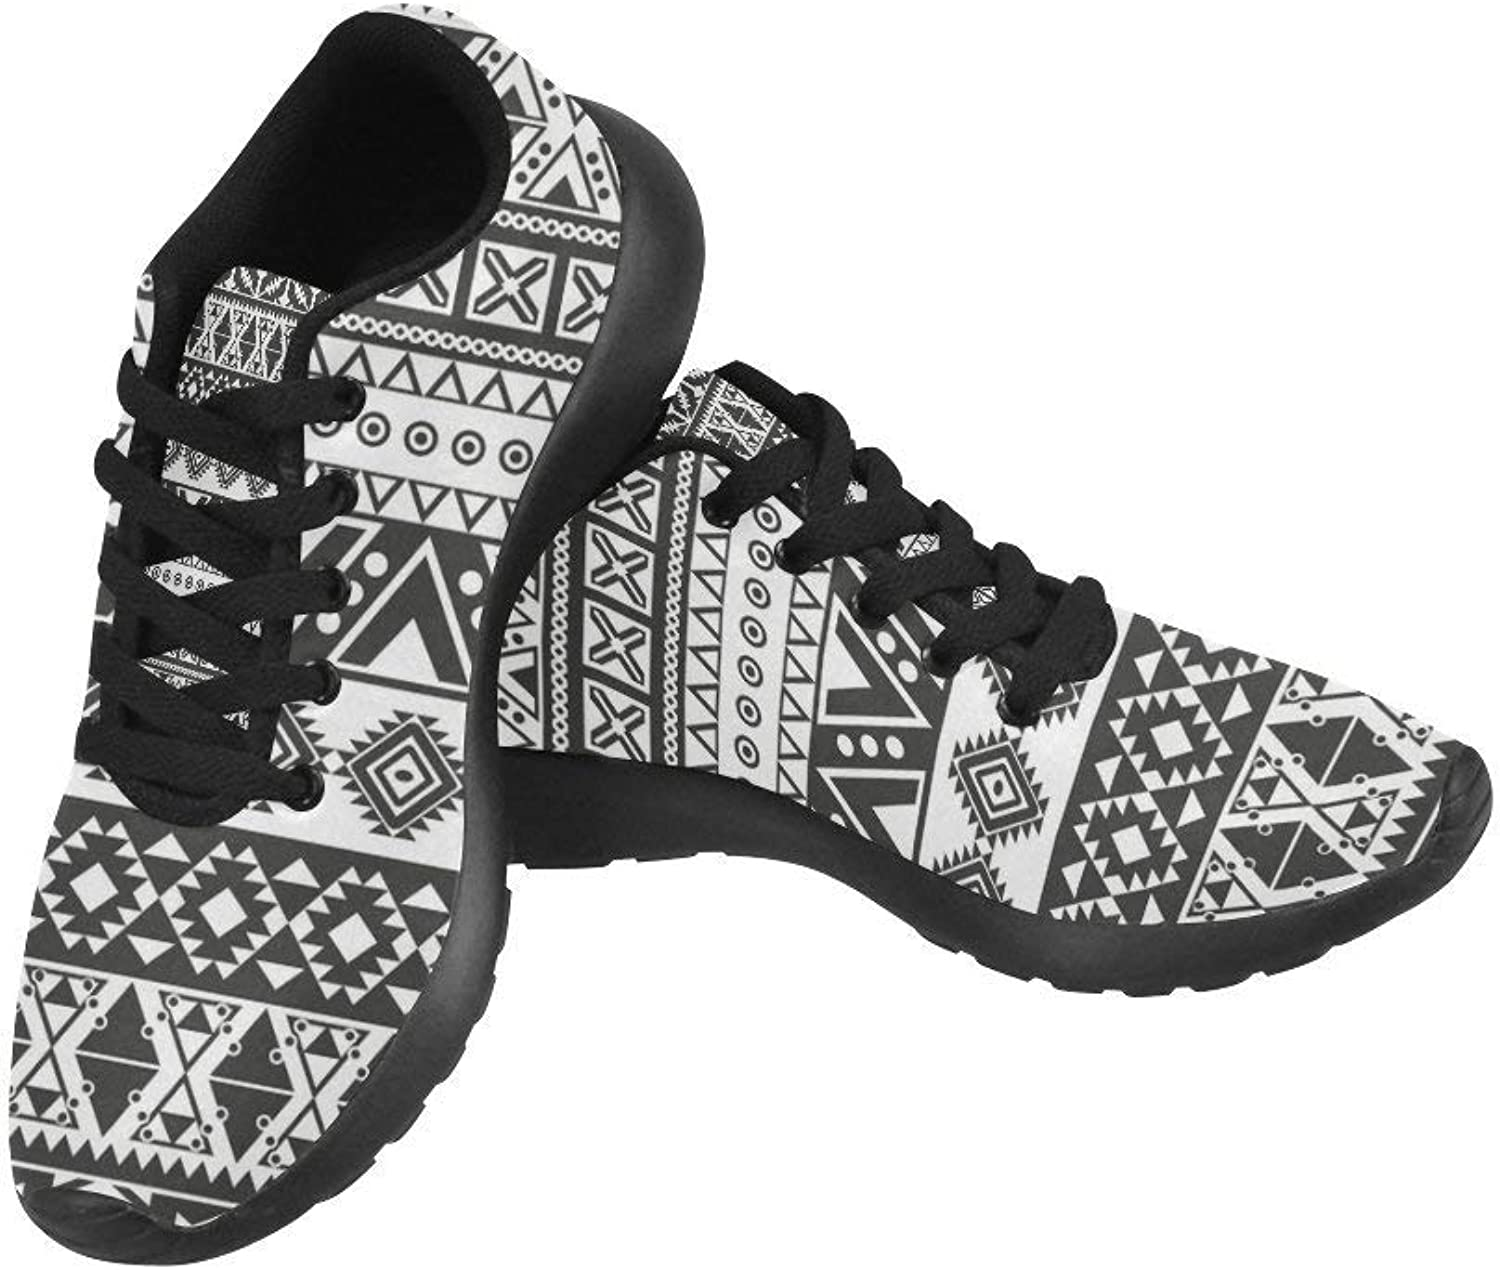 InterestPrint Tribal Aztec Black and White Pattern Print On Women's Running shoes Casual Lightweight Athletic Sneakers US Size 6-15